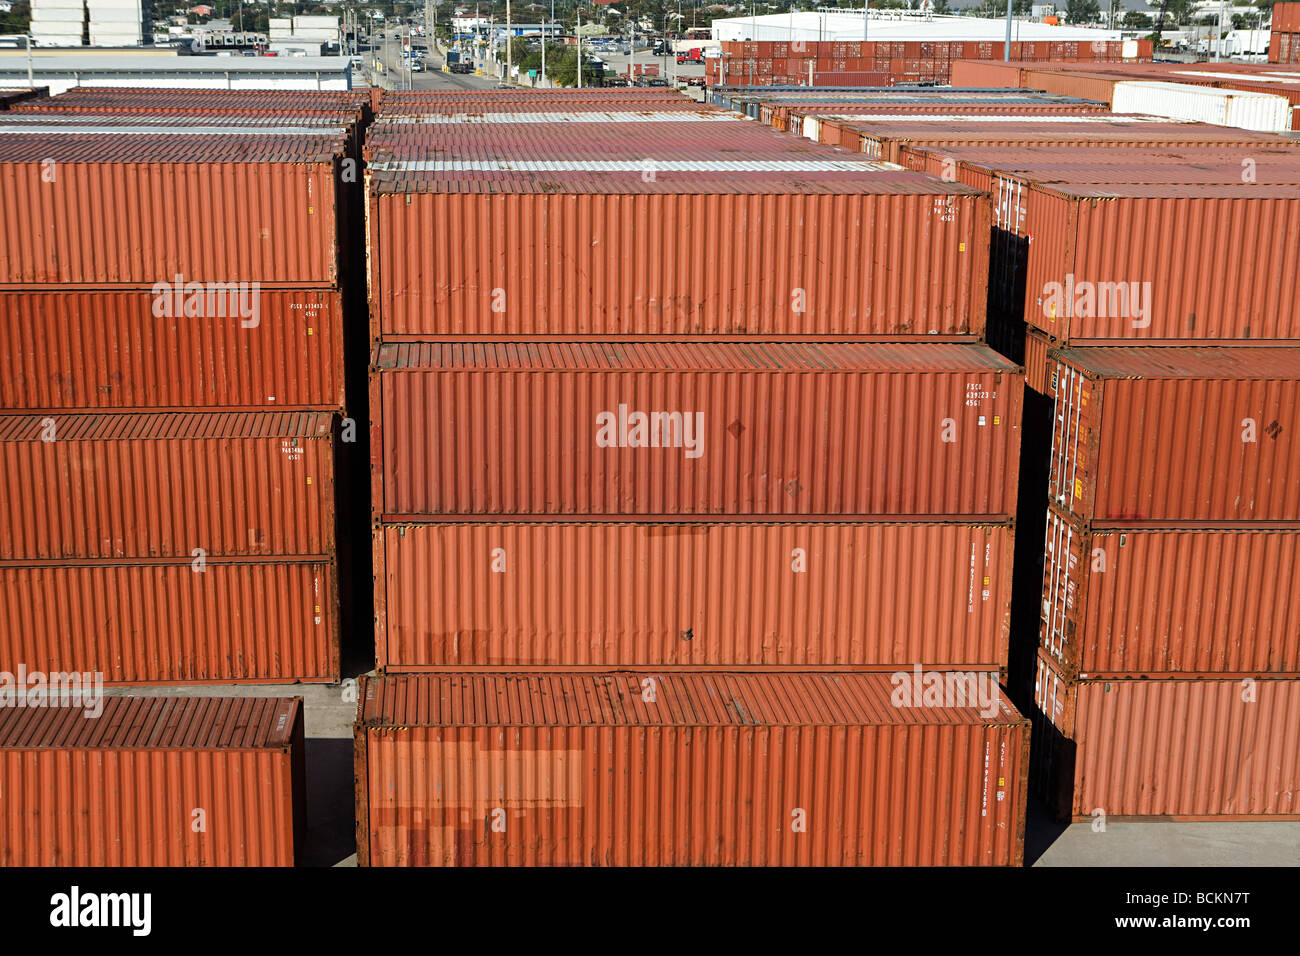 Cargo containers - Stock Image